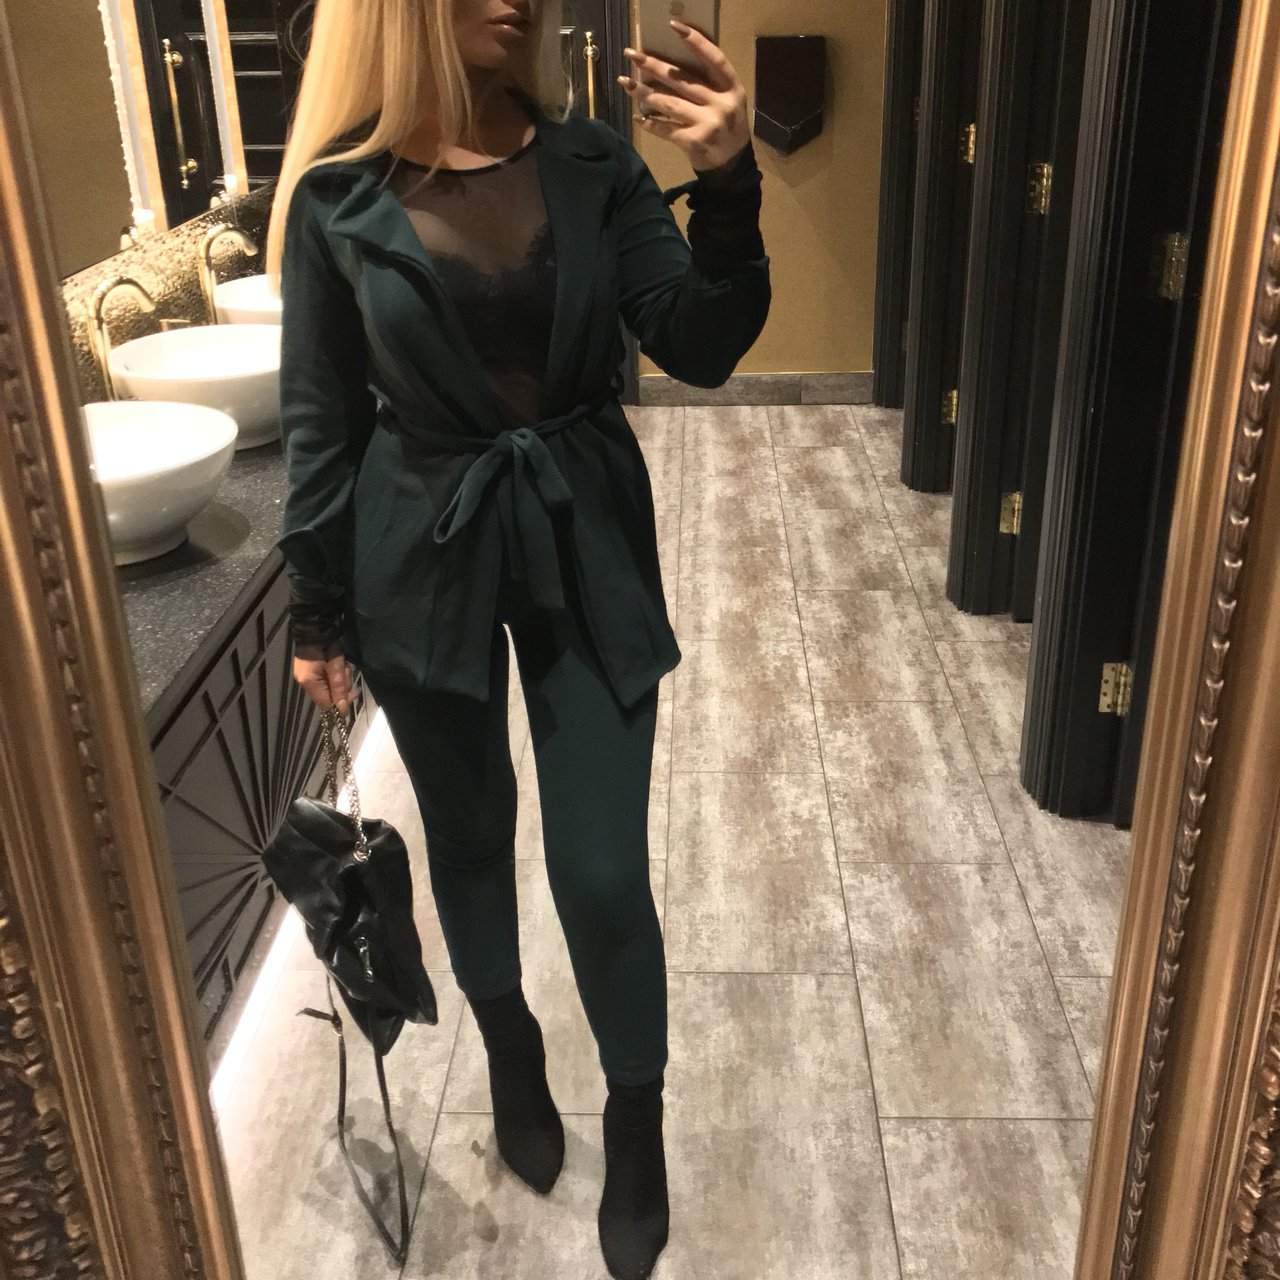 777b723c3 @josiecullen. last year. Huntingdon, United Kingdom. Emerald green PLT petite  suit / coord. Top size 6 bottoms size 8 ...